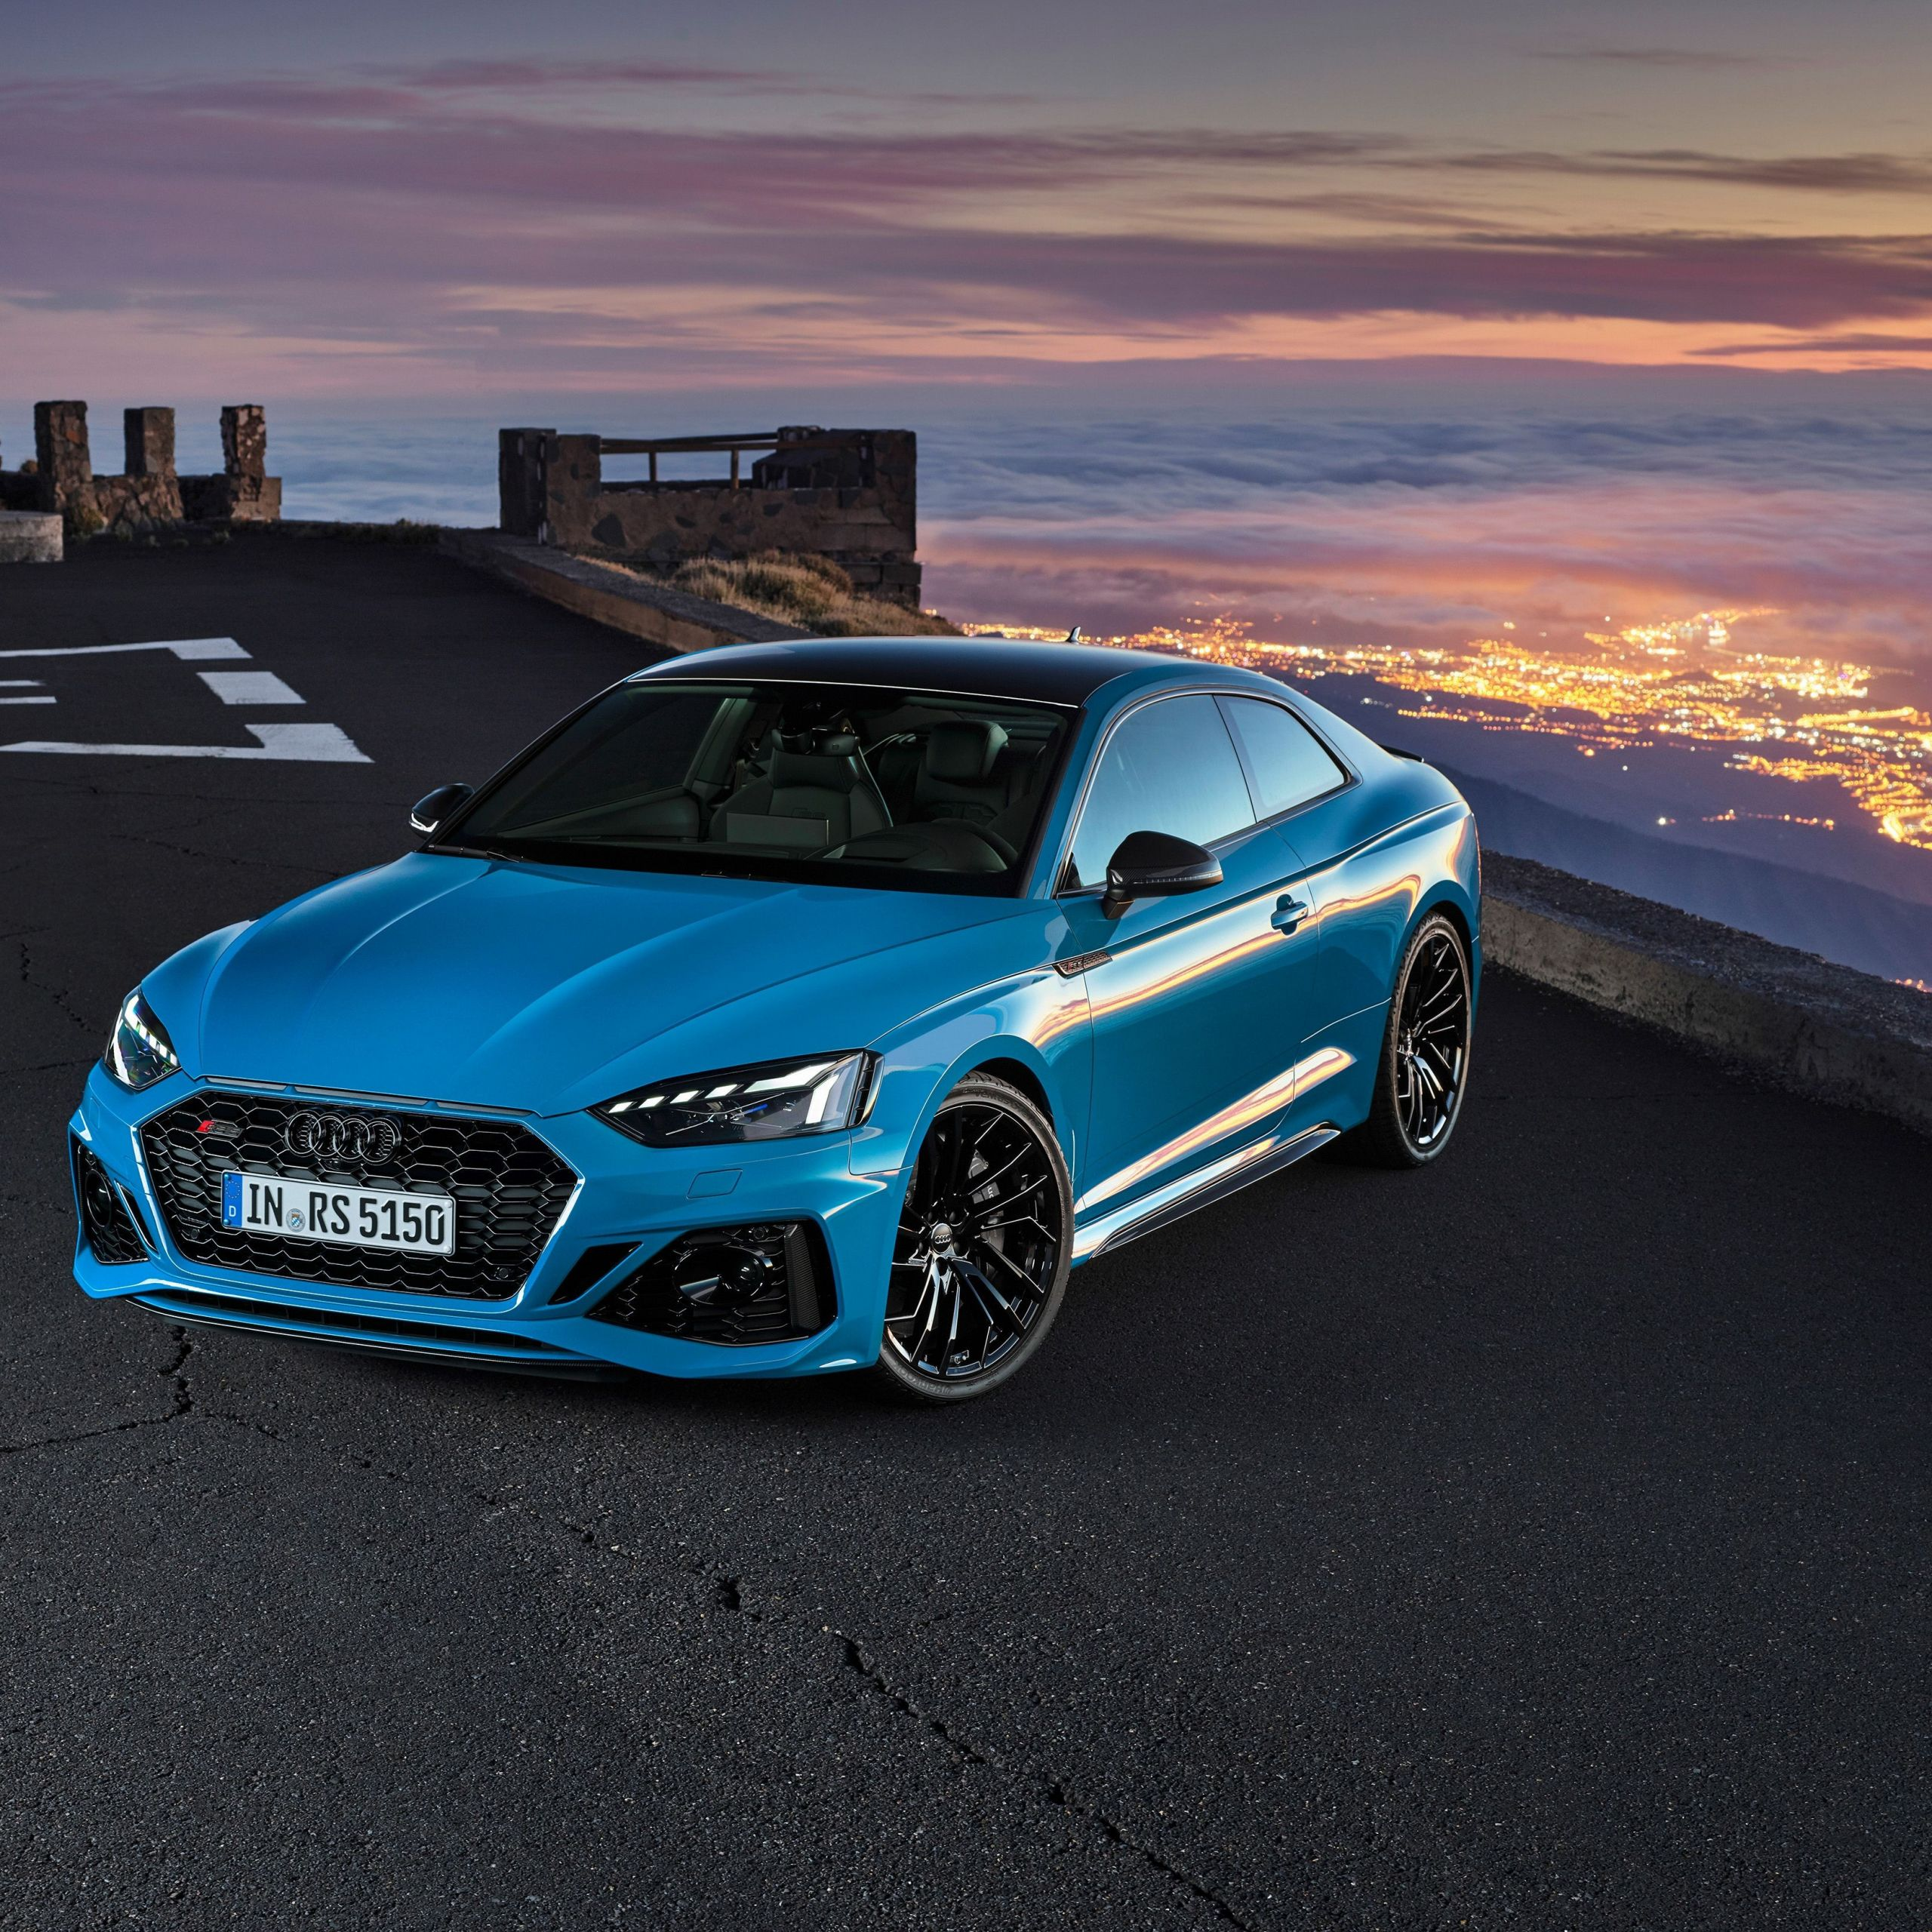 Rs5 for Sale Luxury 2020 Audi Rs5 Review Pricing and Specs